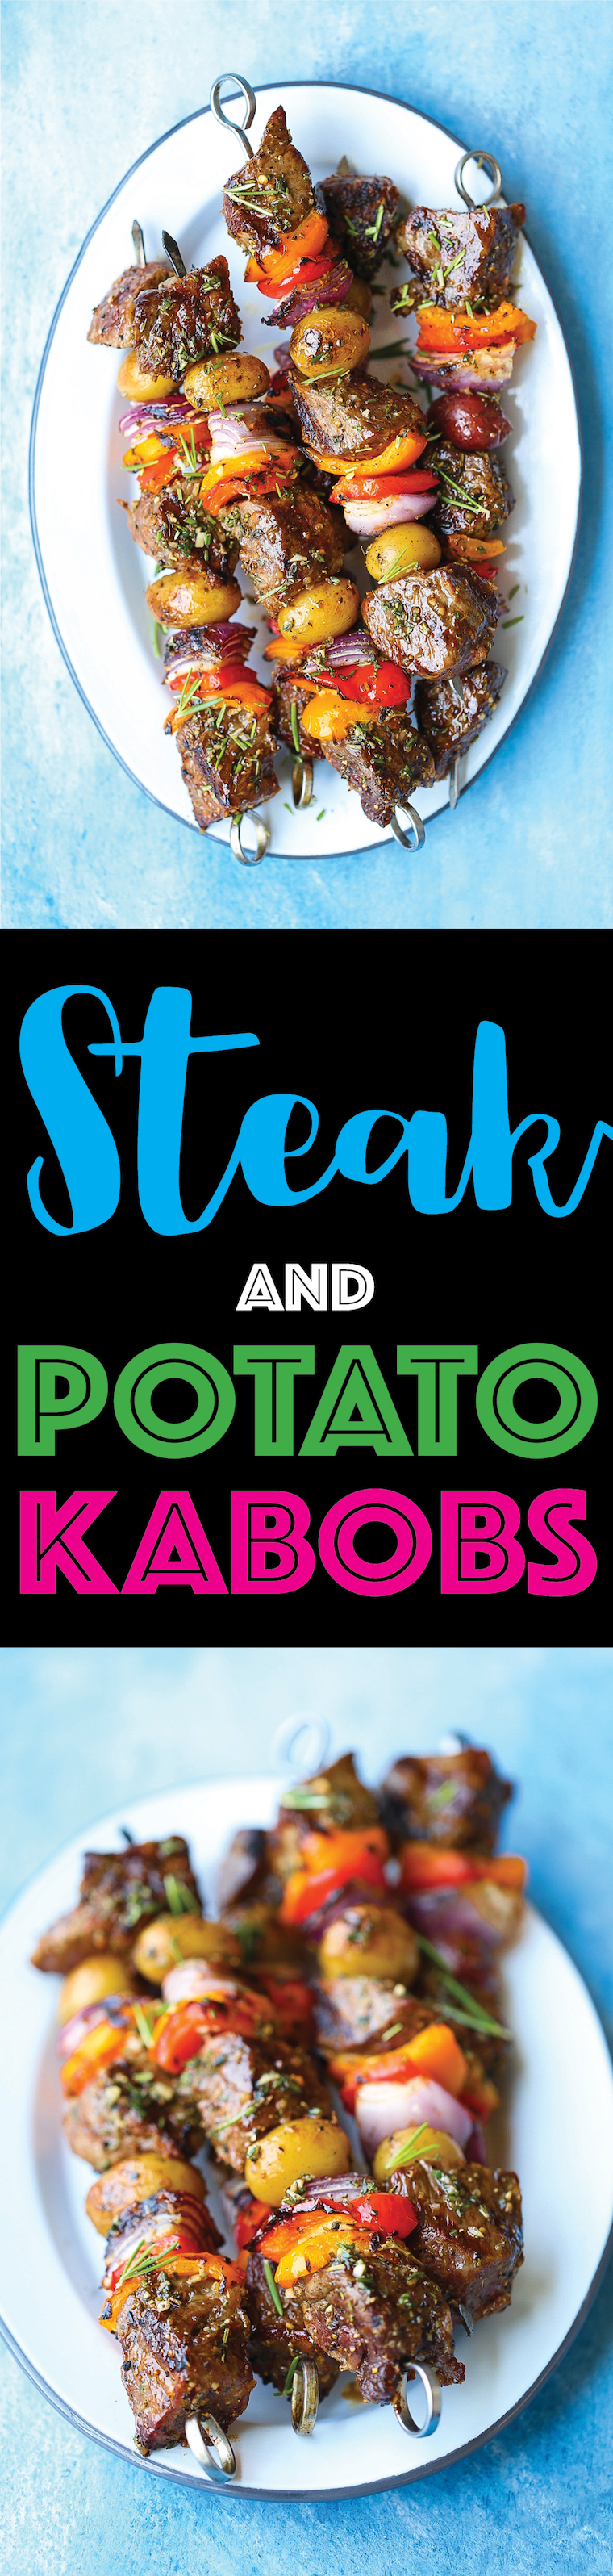 Steak and Potato Kabobs -Everyone's favorite summer meal! The meat comes out so amazingly tender and flavorful with the fresh garlicky-herb mixture!